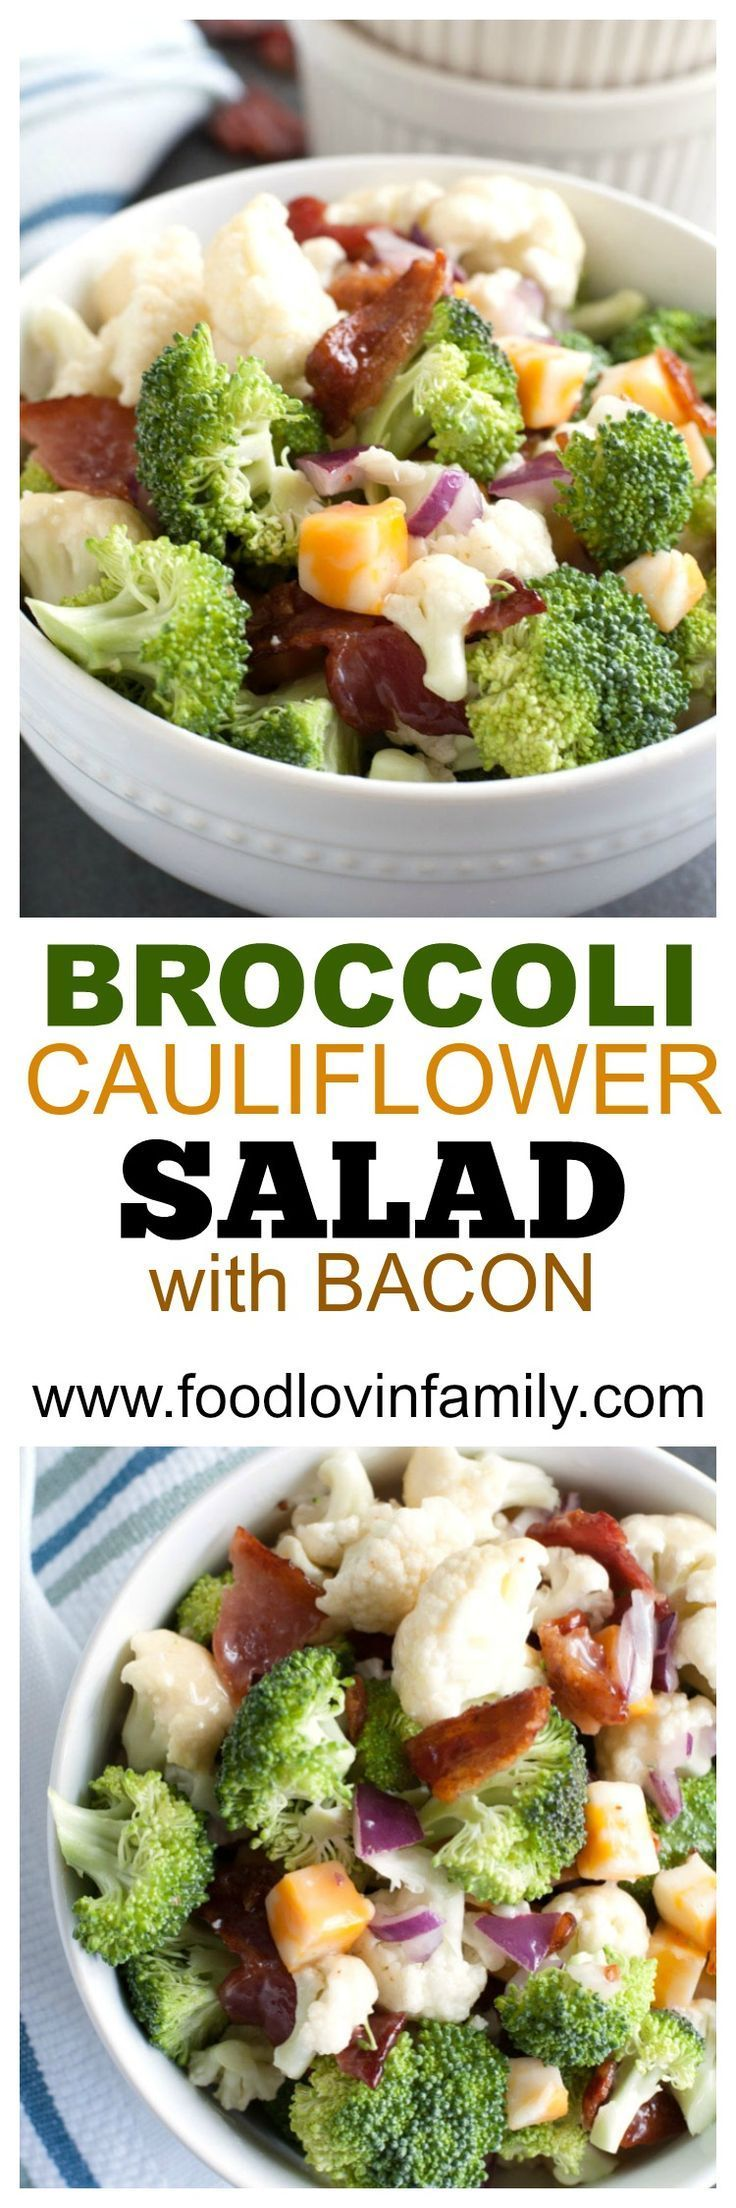 Broccoli Cauliflower Salad with Bacon makes a great salad to bring to any potluck or party. Always a crowd pleaser. Filled with broccoli, cauliflower, bacon and cheese topped with mayonnaise dressing.